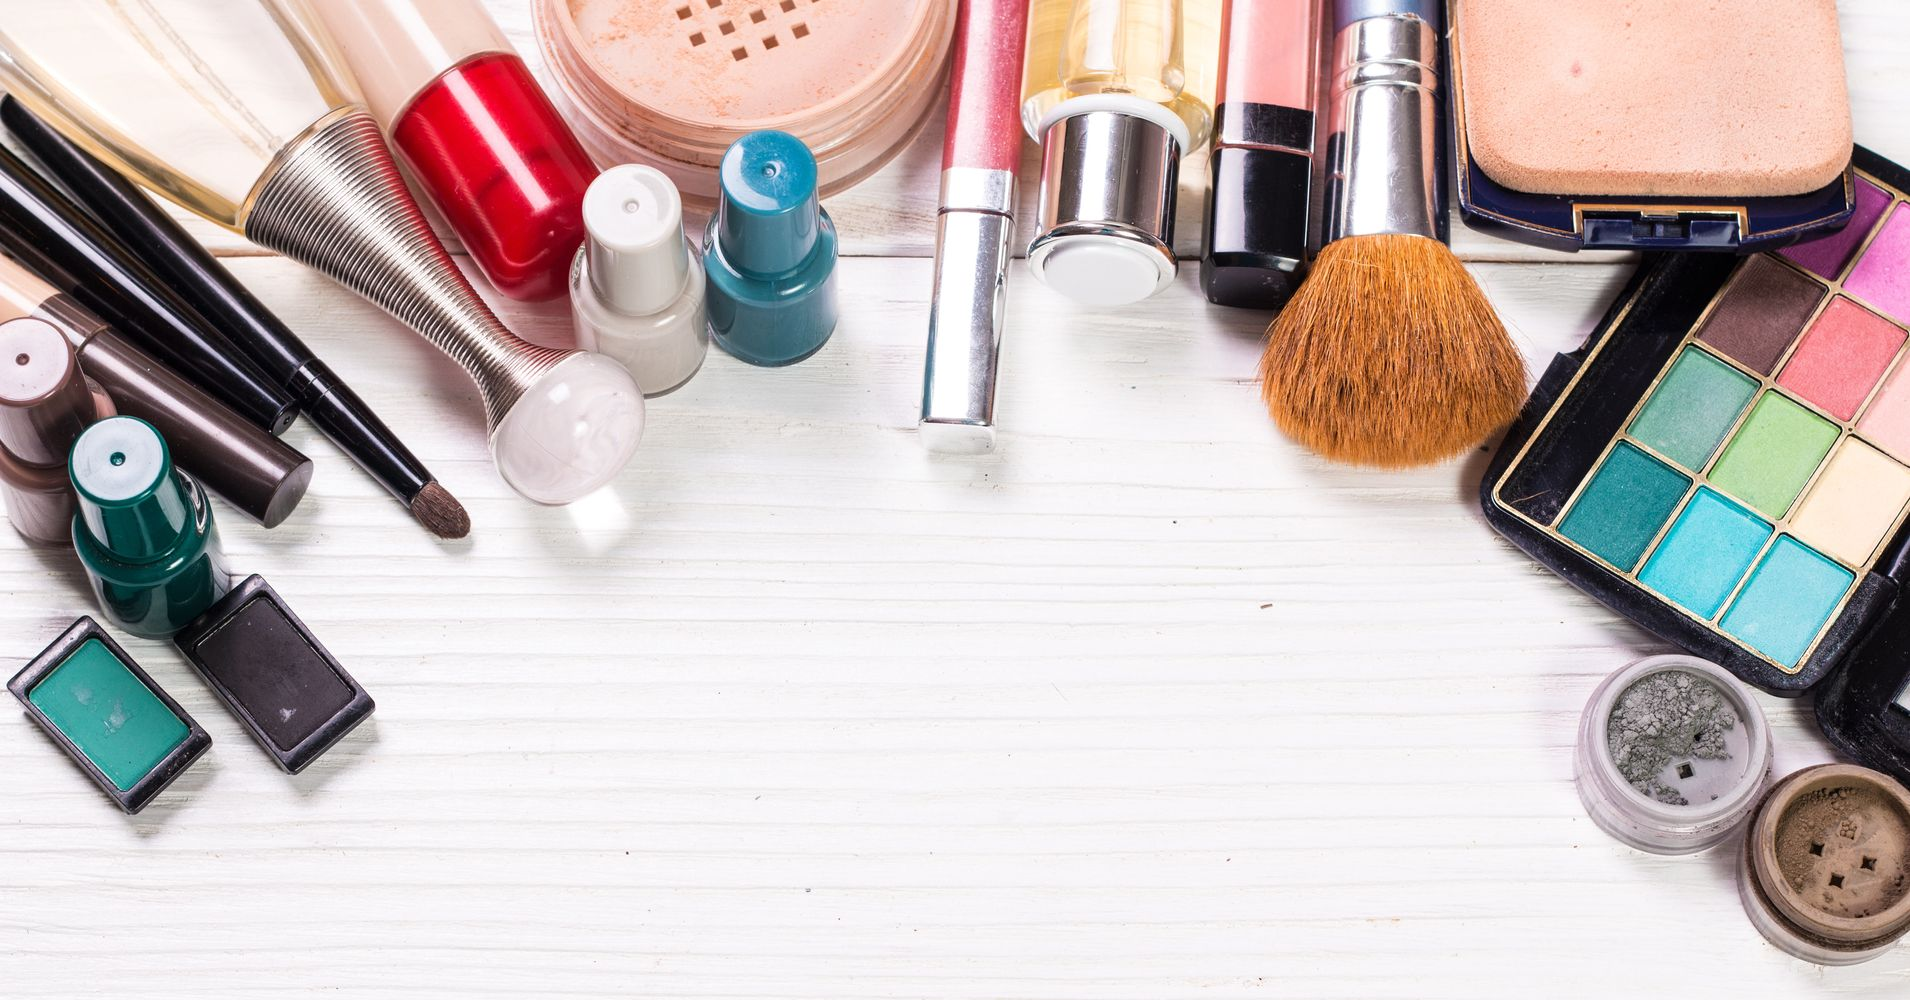 miscalibrations in cosmetics Aspects of cosmetic that psychologically deviate a person's self-perception.